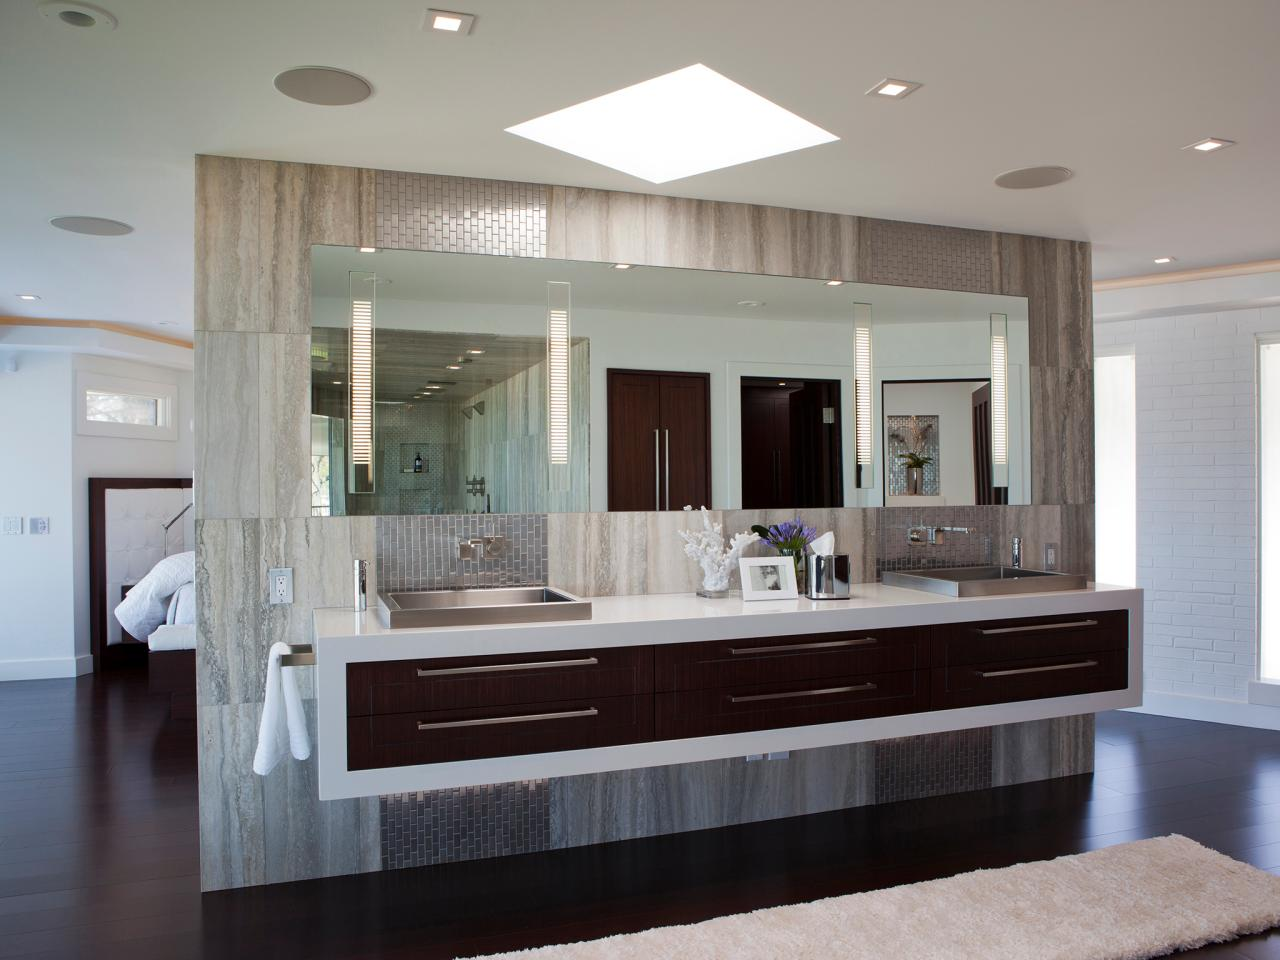 Bathroom stainless steel sinks hgtv for Contemporary bathrooms